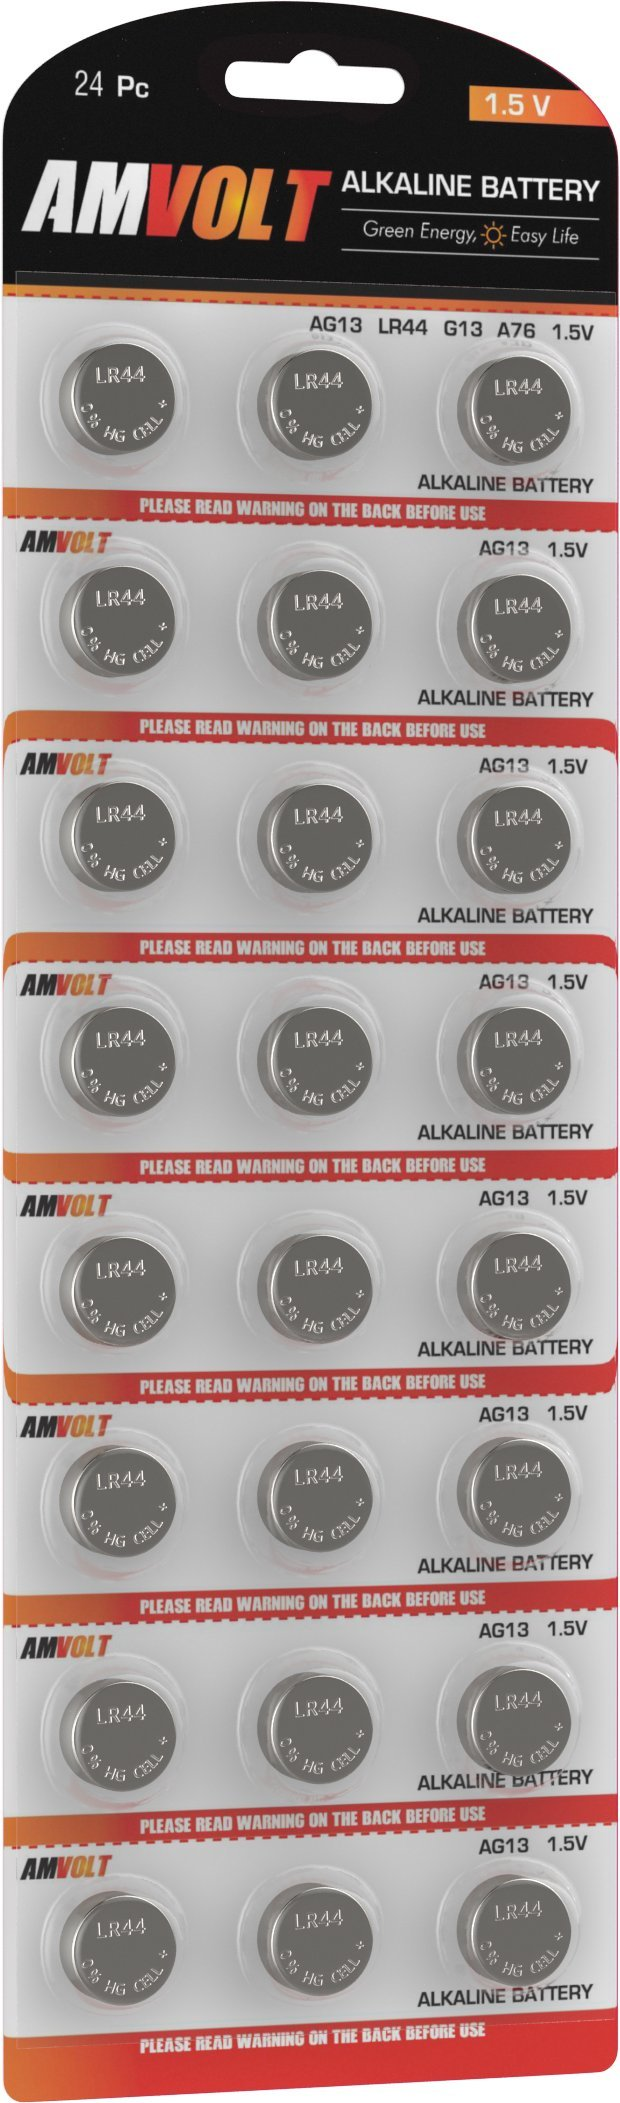 24 Pack LR44 AG13 Battery - [Ultra Power] Premium Alkaline 1.5 Volt Non Rechargeable Round Button Cell Batteries for Watches Clocks Remotes Games Controllers Toys & Electronic Devices - 2020 Exp Date